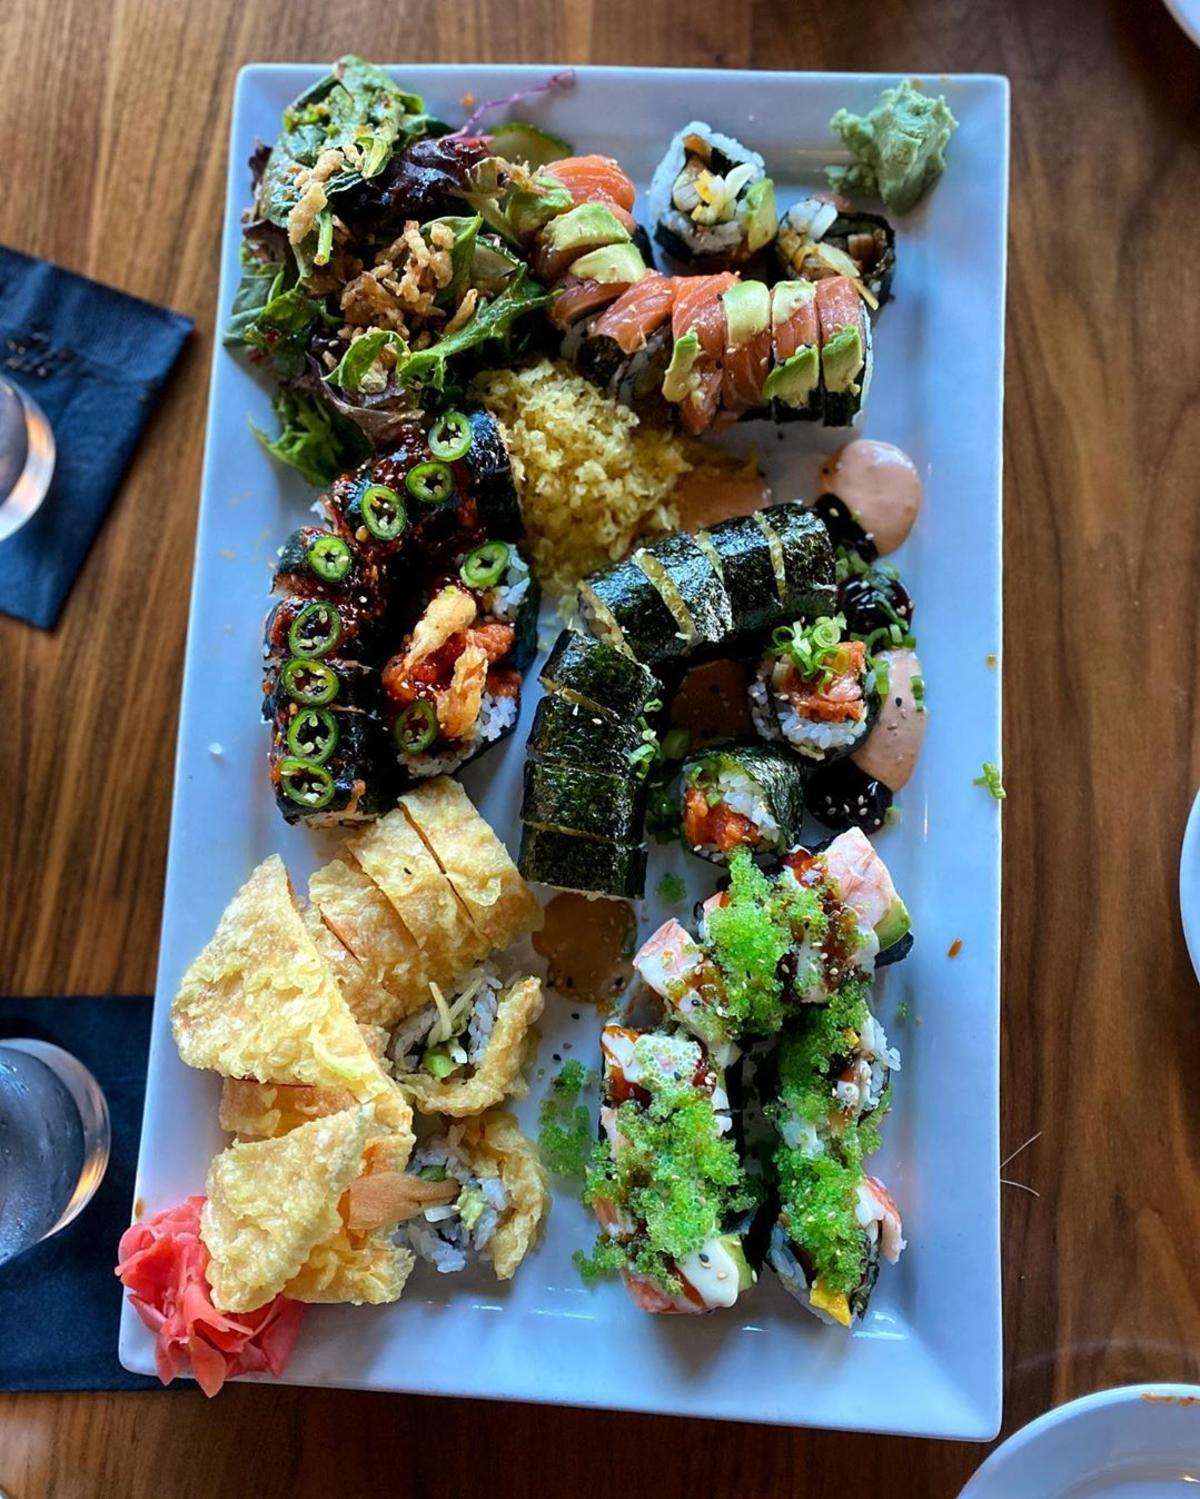 Beautiful sushi platter at Maru Sushi & Grill in Midland